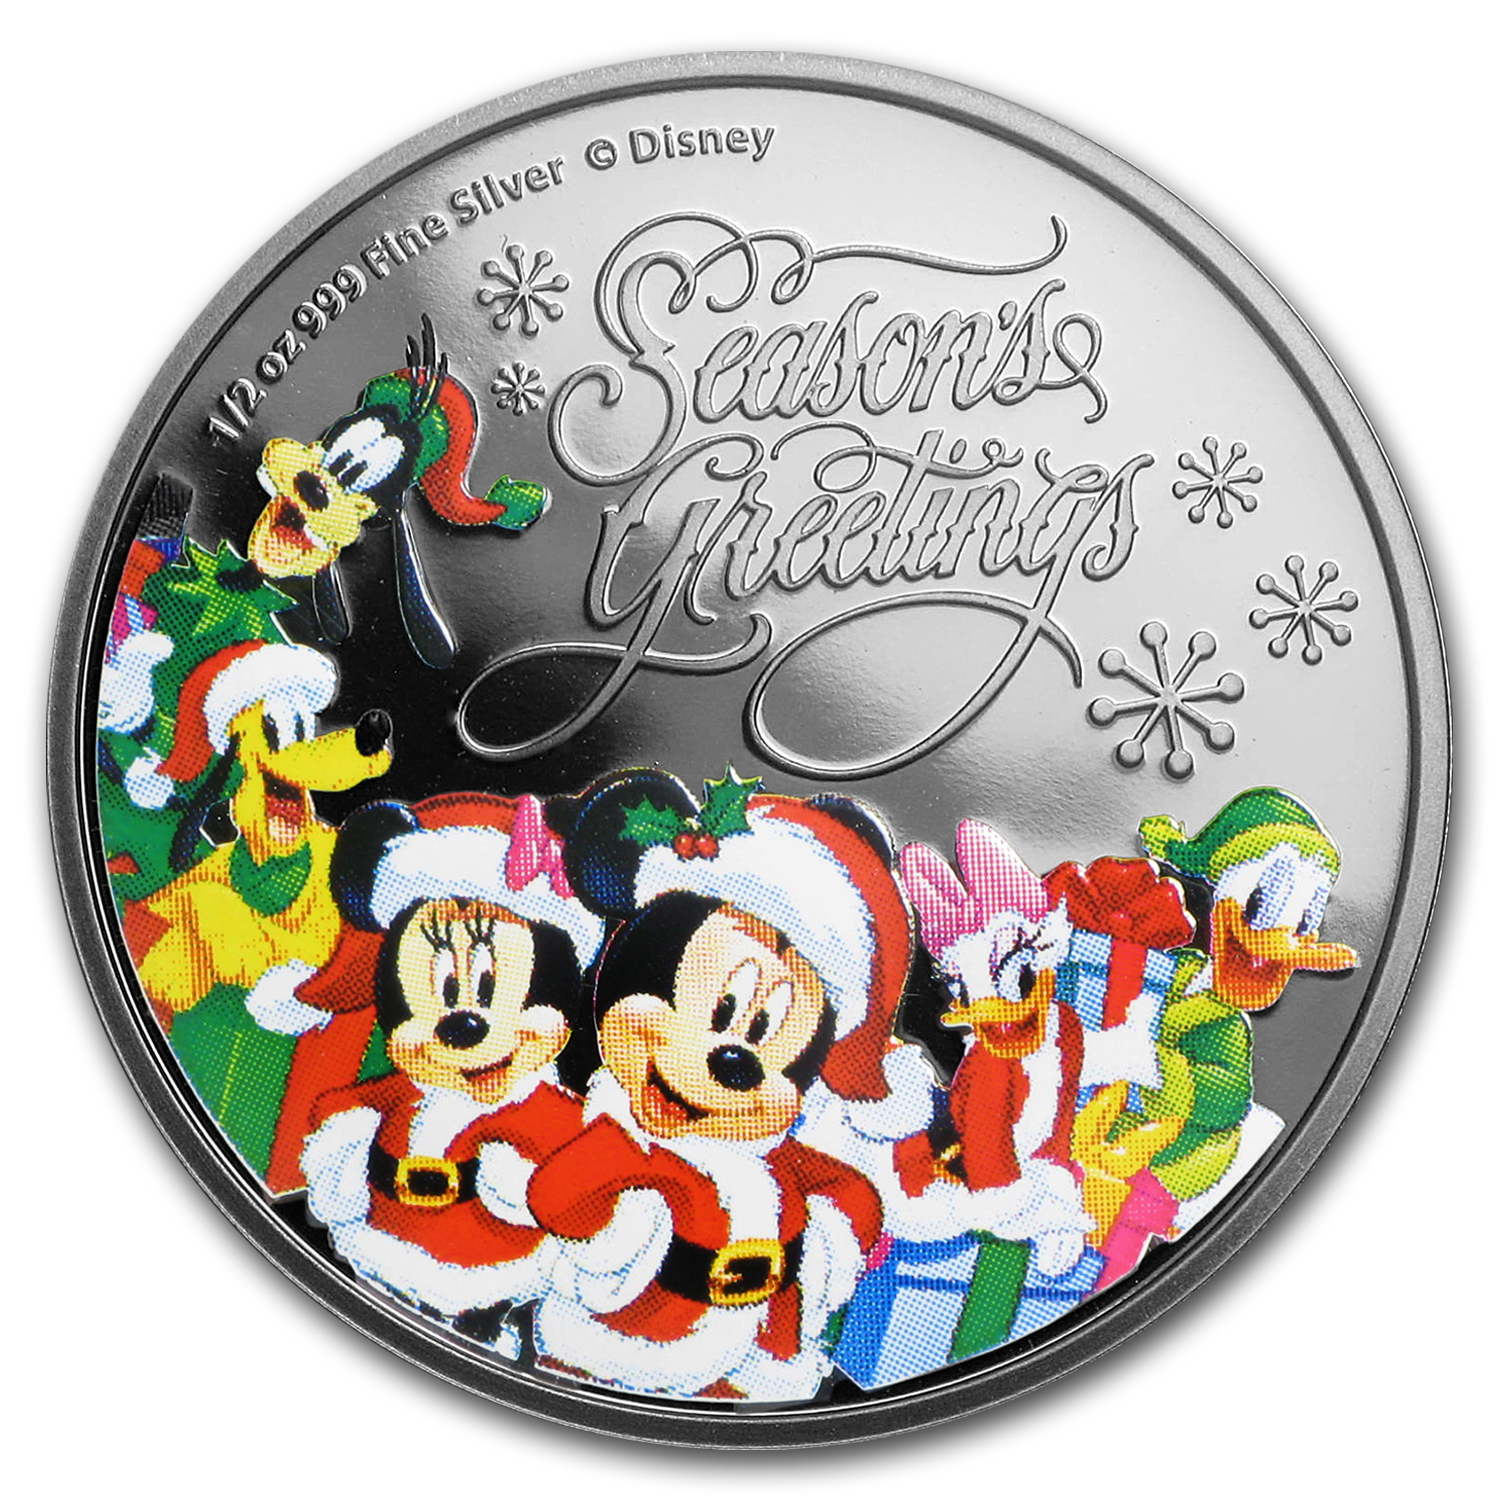 2016 Niue 1/2 oz Silver $1 Disney Season's Greetings Proof